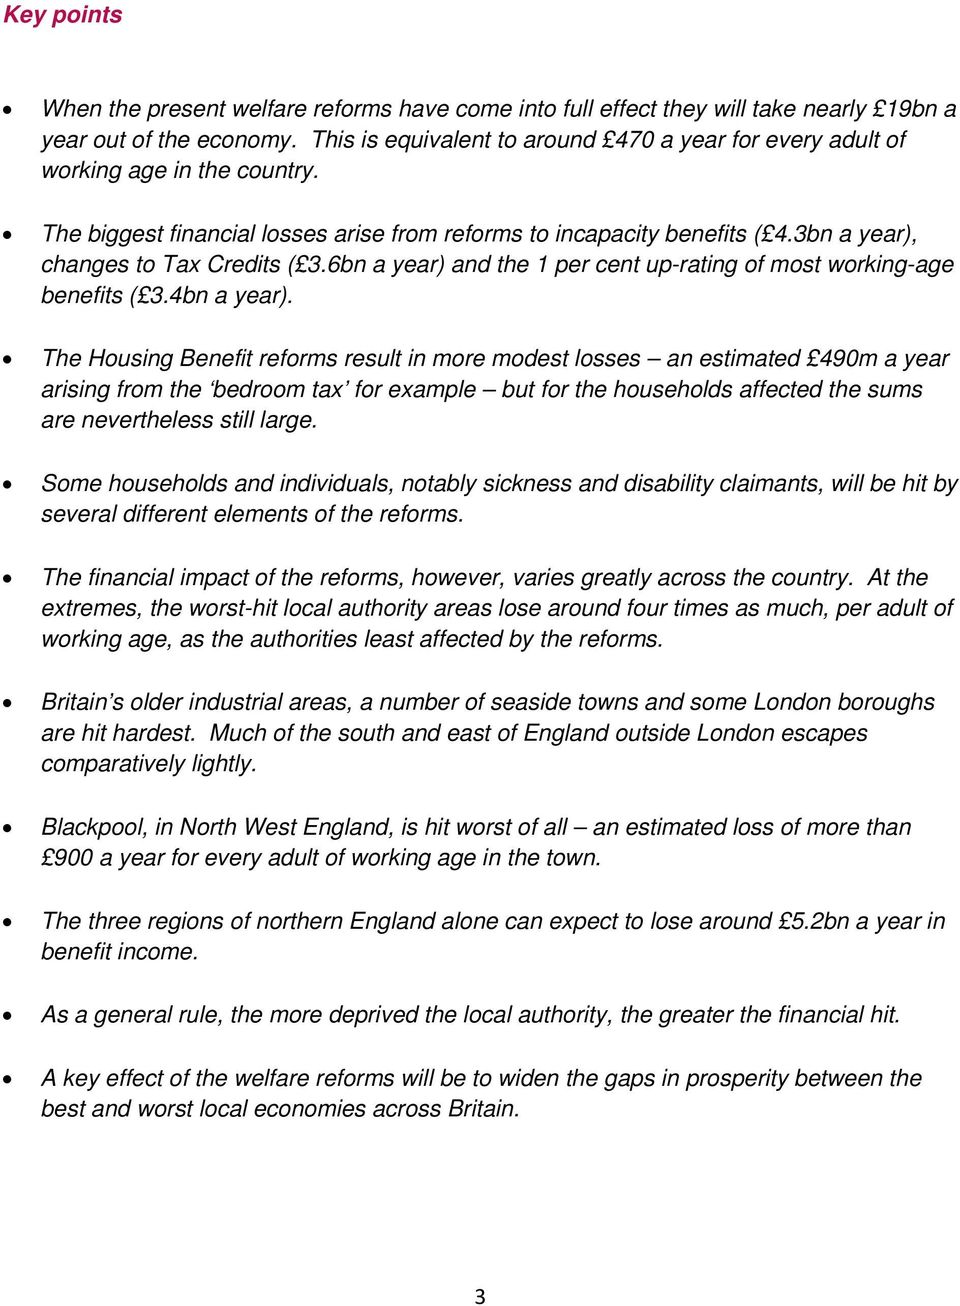 3bn a year), changes to Tax Credits ( 3.6bn a year) and the 1 per cent up-rating of most working-age benefits ( 3.4bn a year).